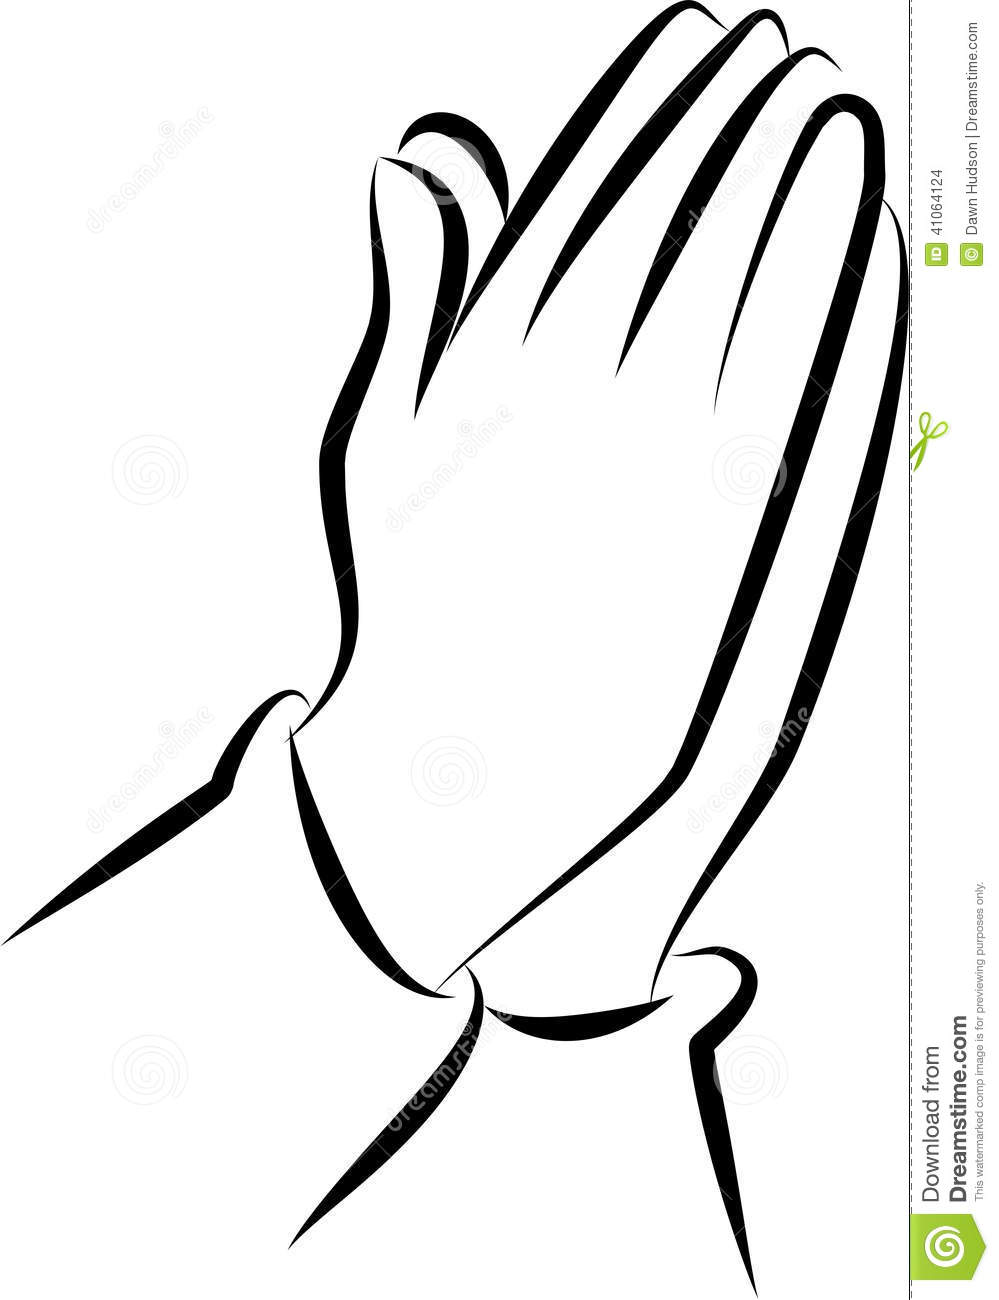 999x1300 Praying Hands Black And White Clipart